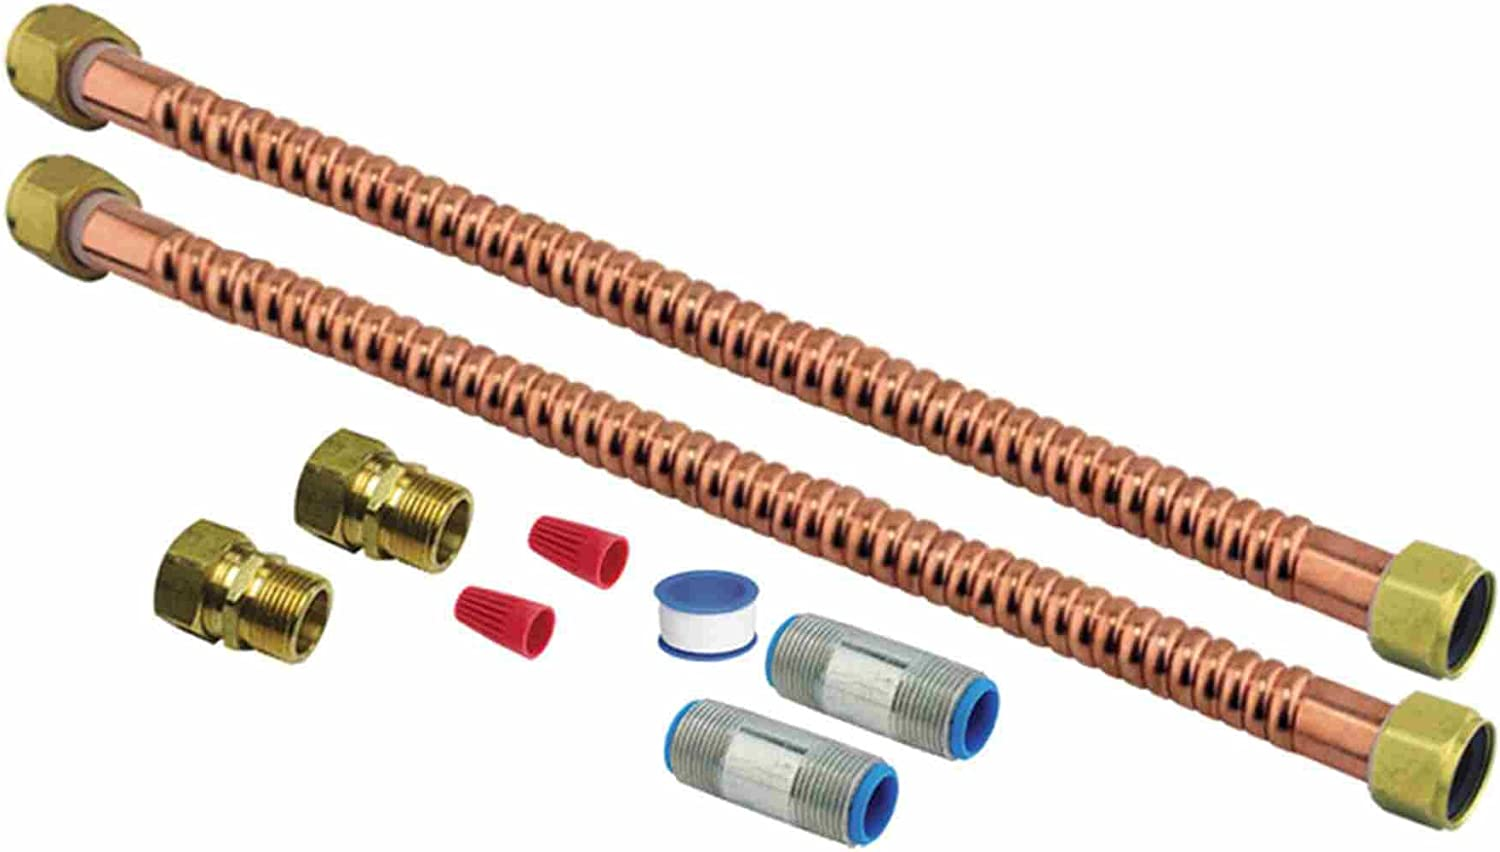 UV20014 Electric Water Heater Installation 18 Special sale item - Kit Co in. Bargain sale